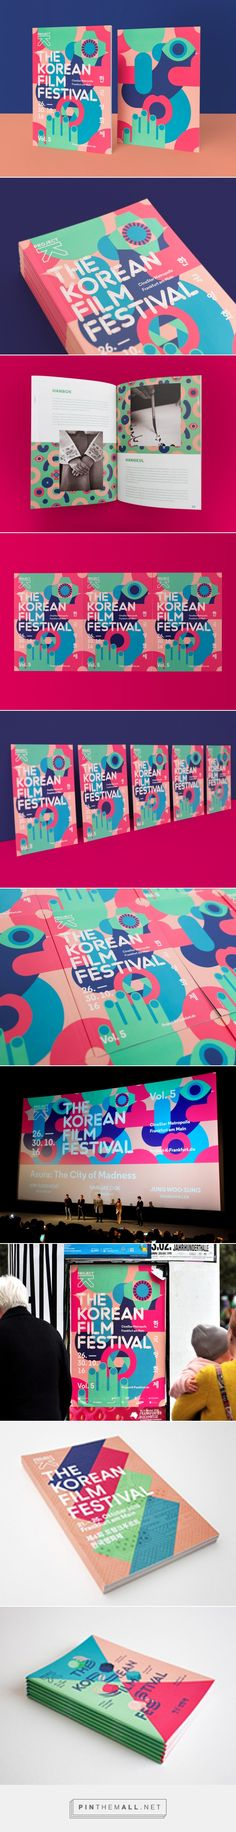 Project K – The Korean Film Festival 2016 on Behance... - a grouped images picture - Pin Them All